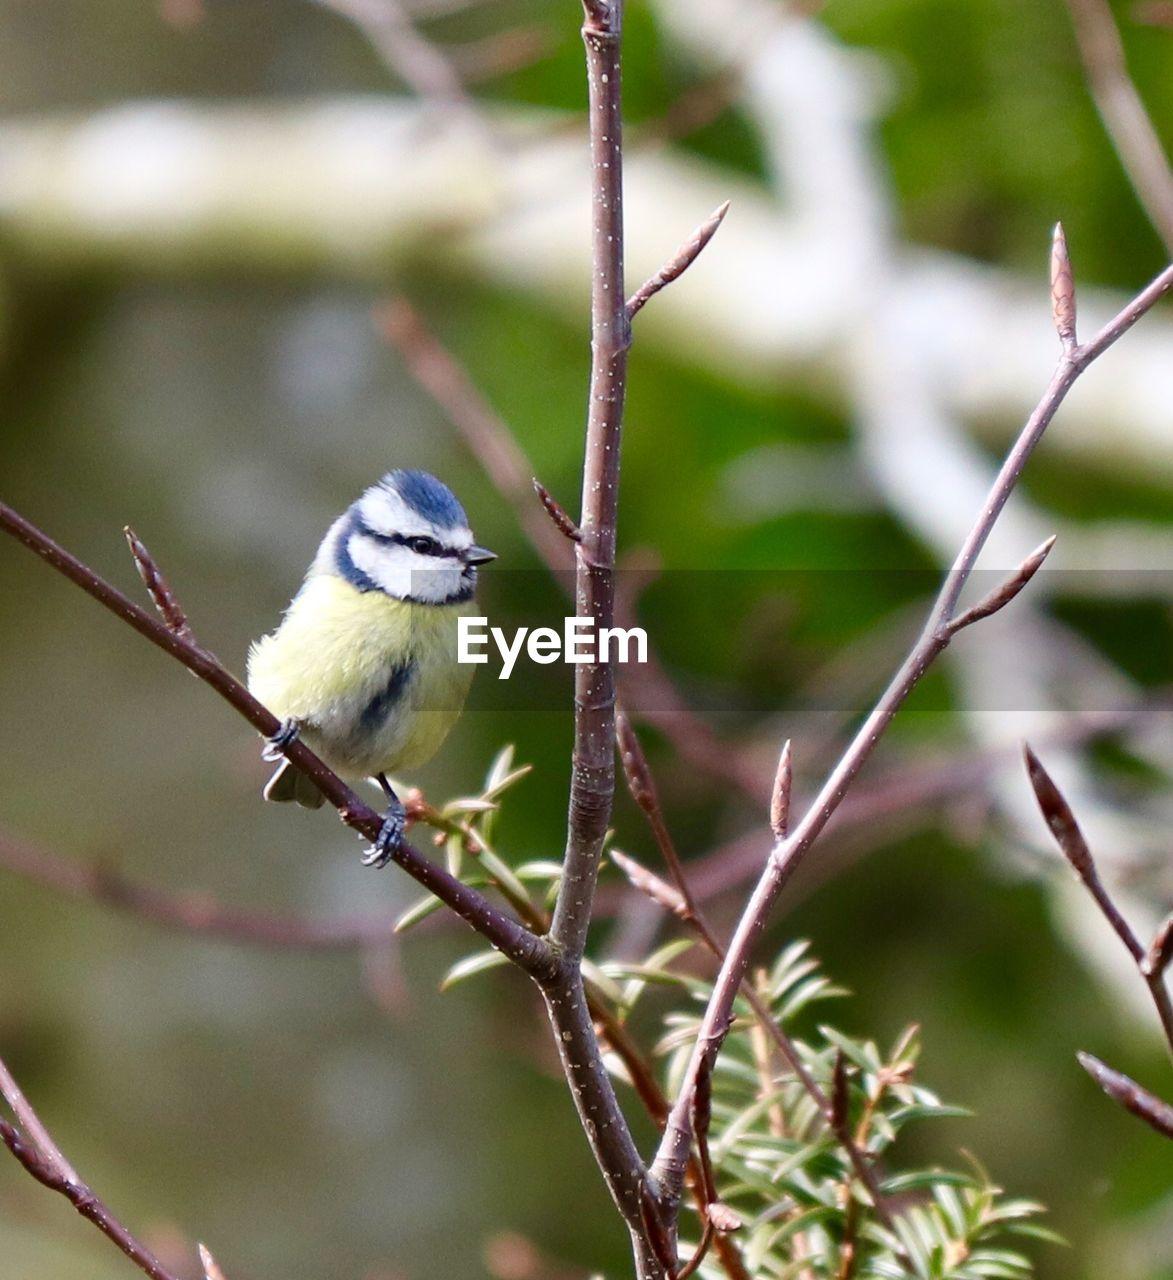 animal wildlife, animal themes, vertebrate, animal, bird, animals in the wild, one animal, perching, plant, focus on foreground, no people, day, nature, branch, tree, bluetit, outdoors, close-up, twig, beauty in nature